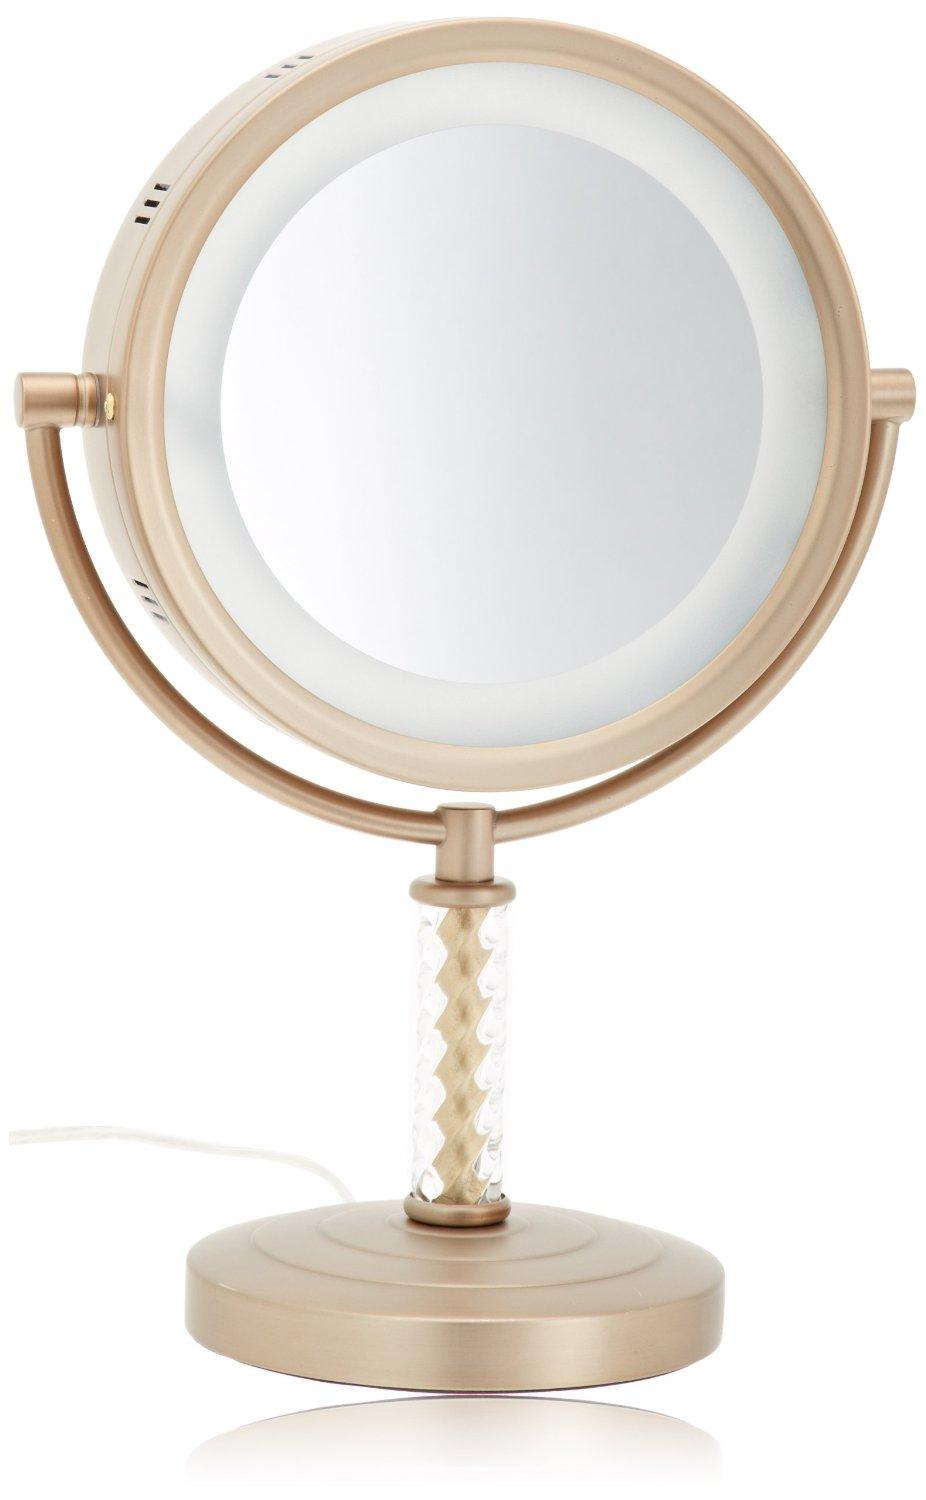 jerdon hl856bc 8 inch halo lighted vanity mirror with 6x magnific. Black Bedroom Furniture Sets. Home Design Ideas